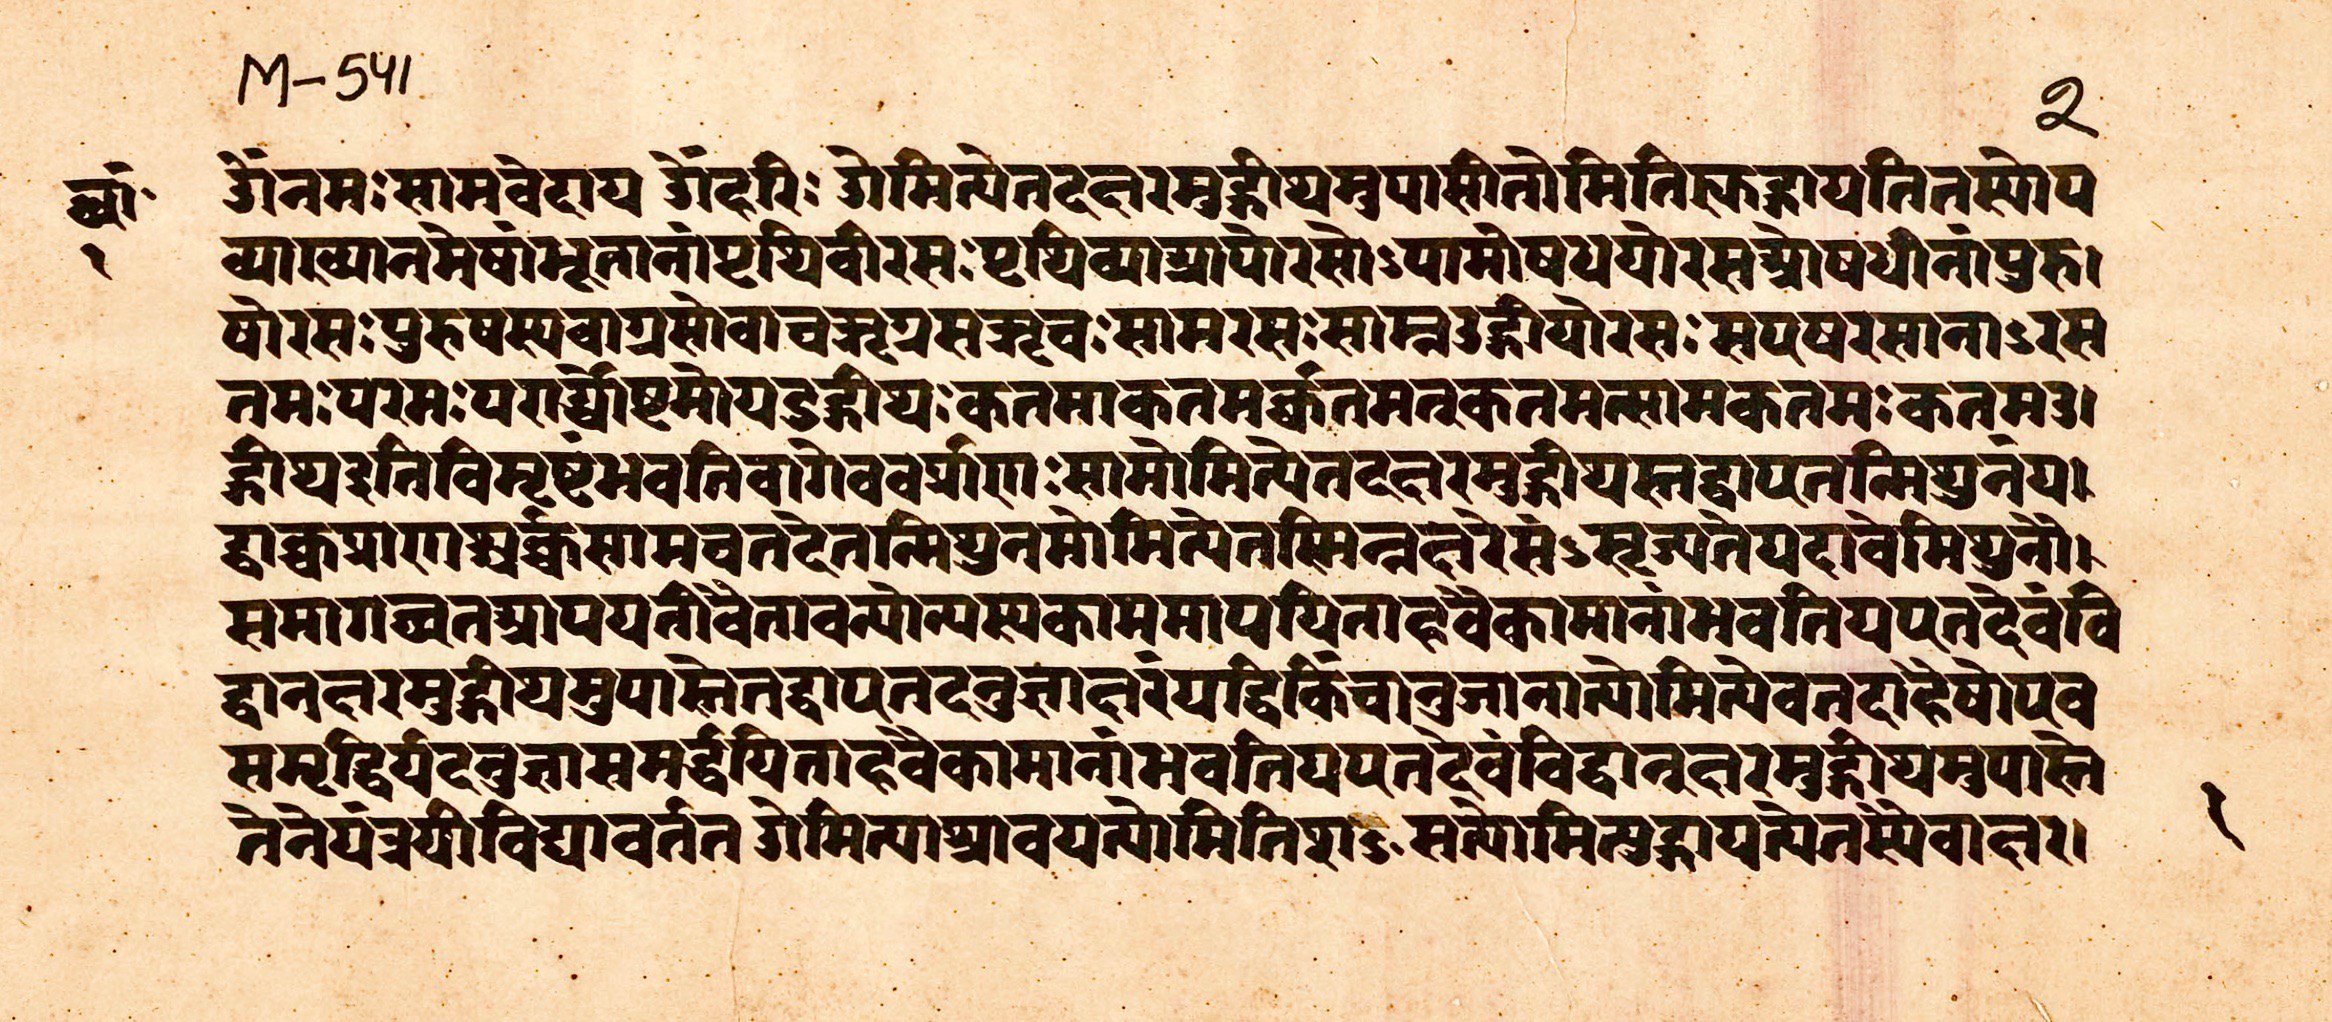 Chandogya Upanishad - The complete information and online sale with